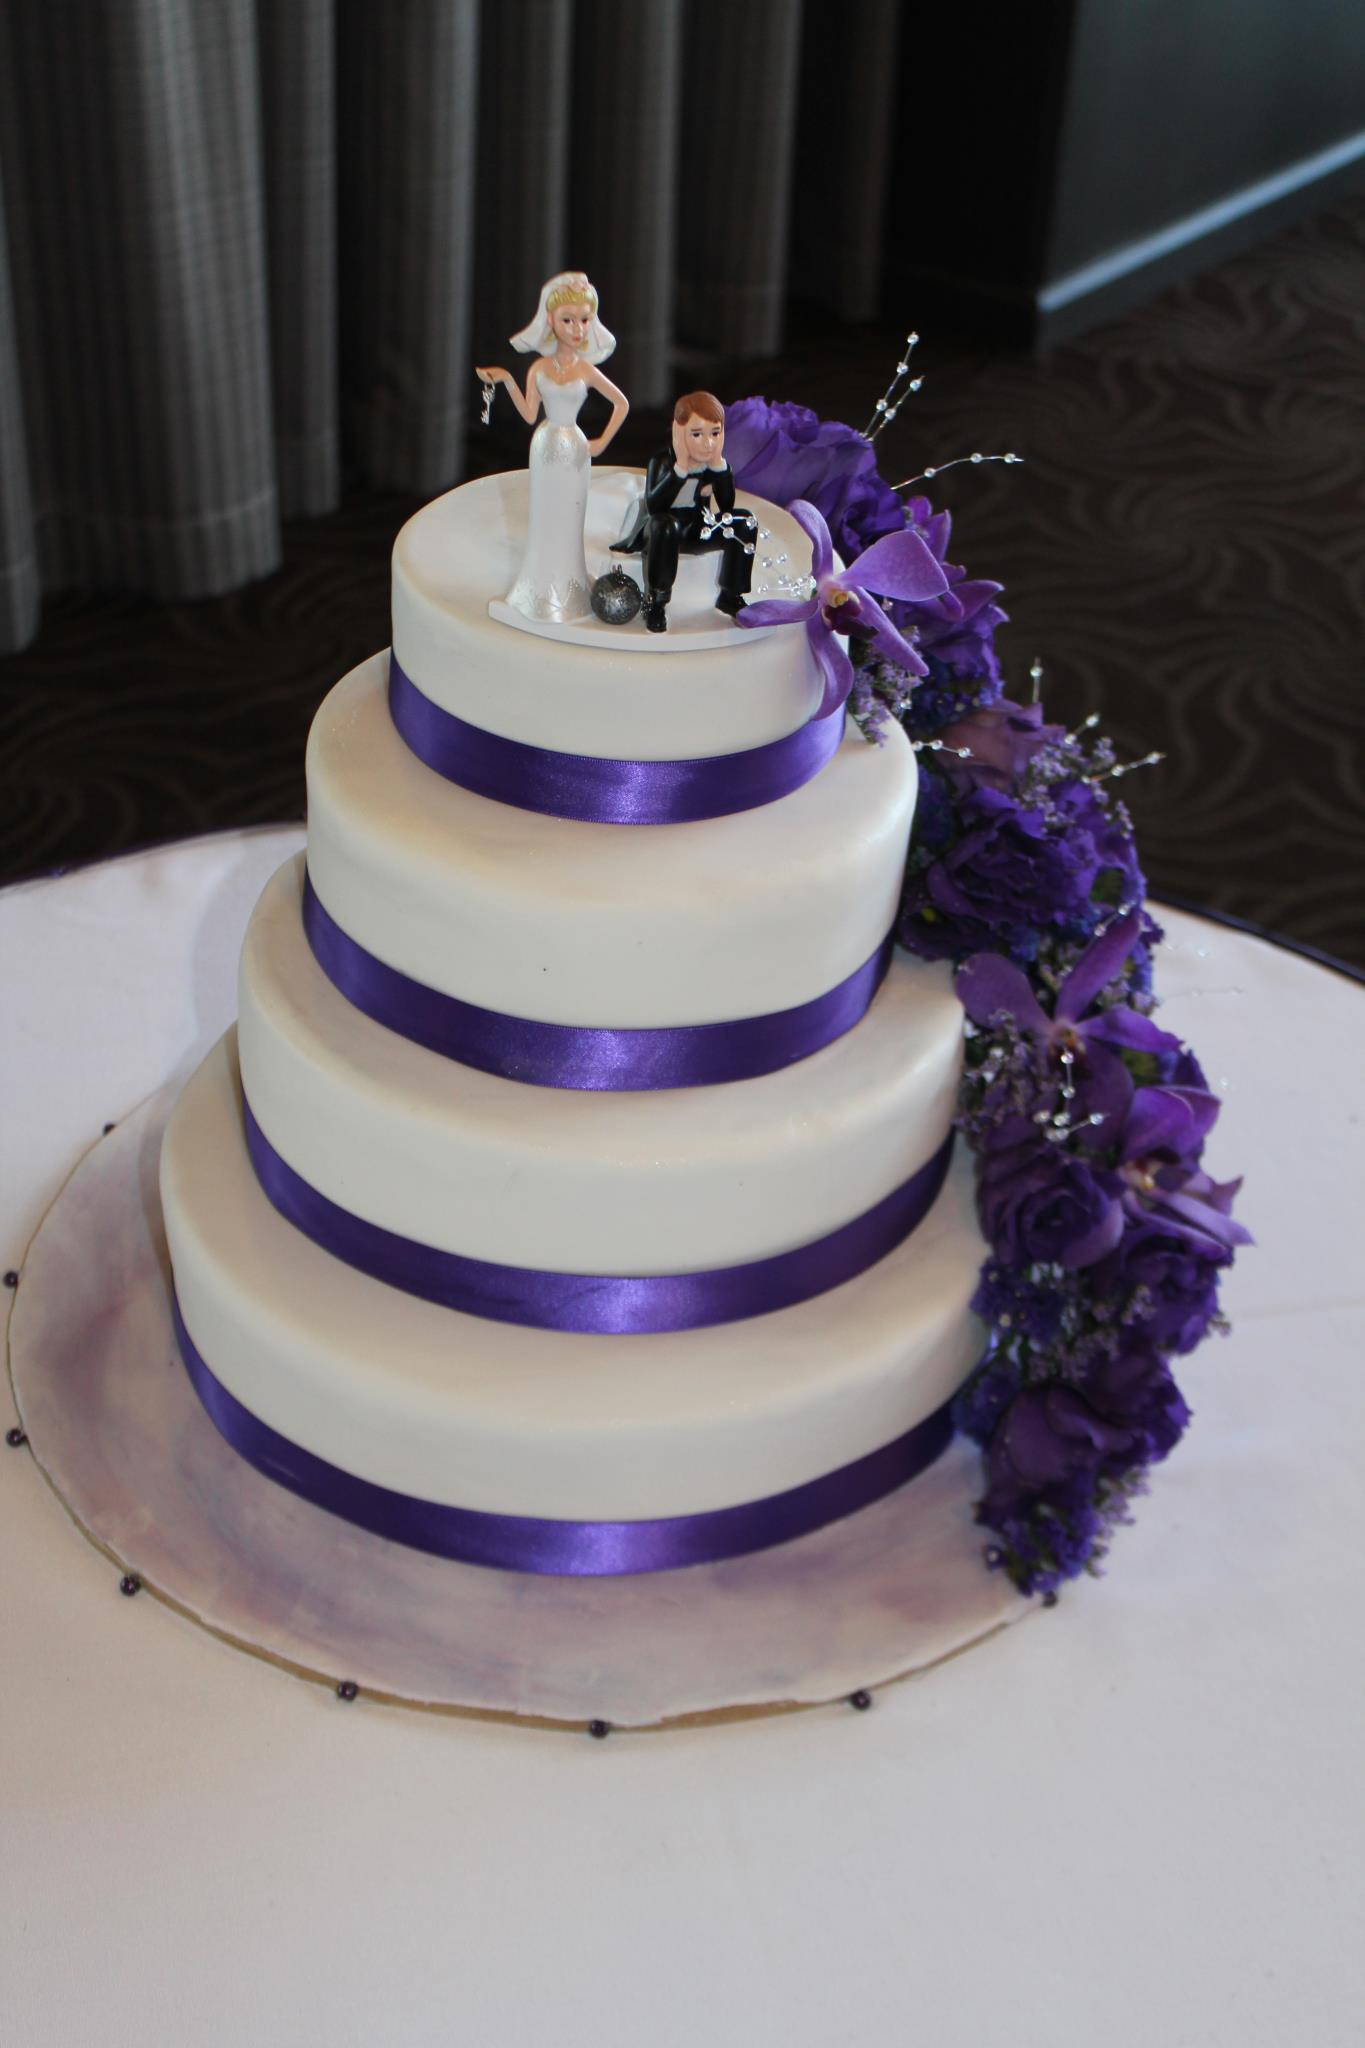 Carmel's Wedding Cake